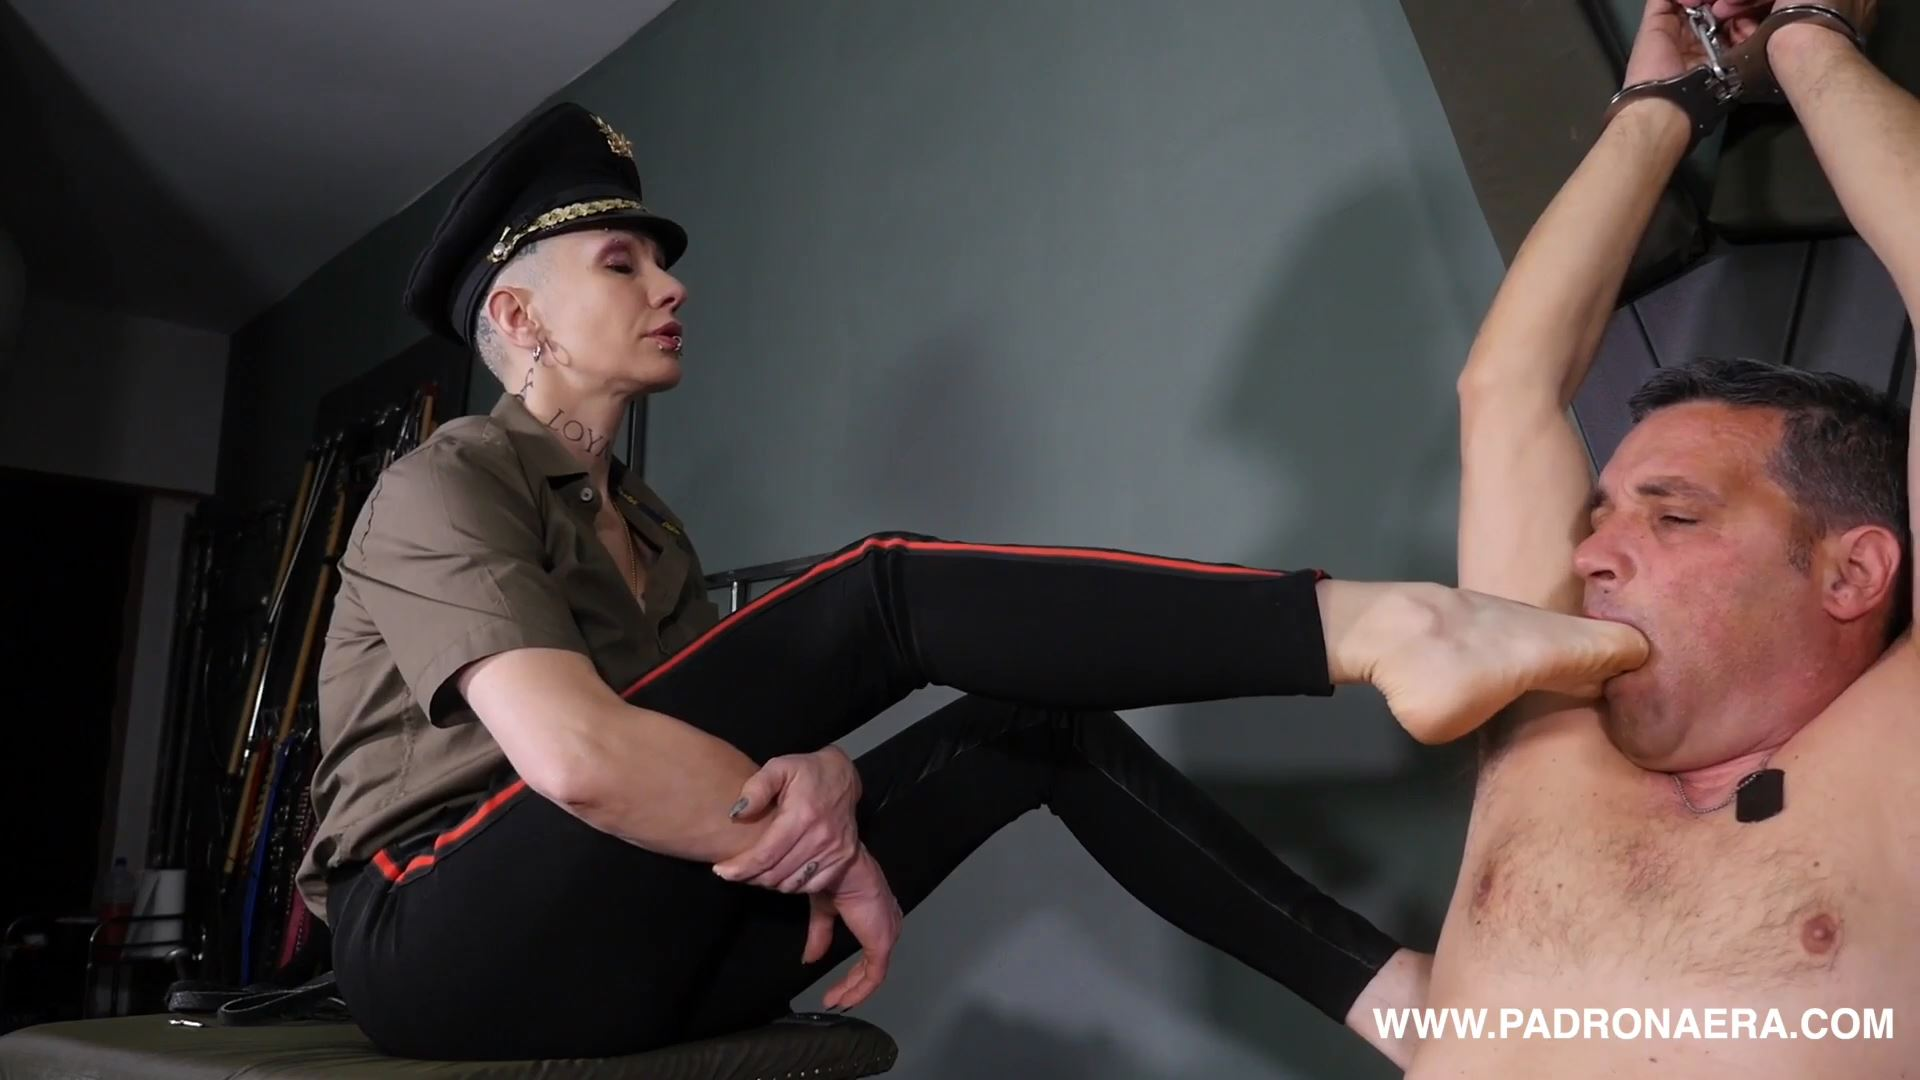 Giada Da Vinci In Scene: DESERTER PUNISHMENT PART TWO: CORPORAL PUNISHMENT - PADRONAERA - FULL HD/1080p/MP4